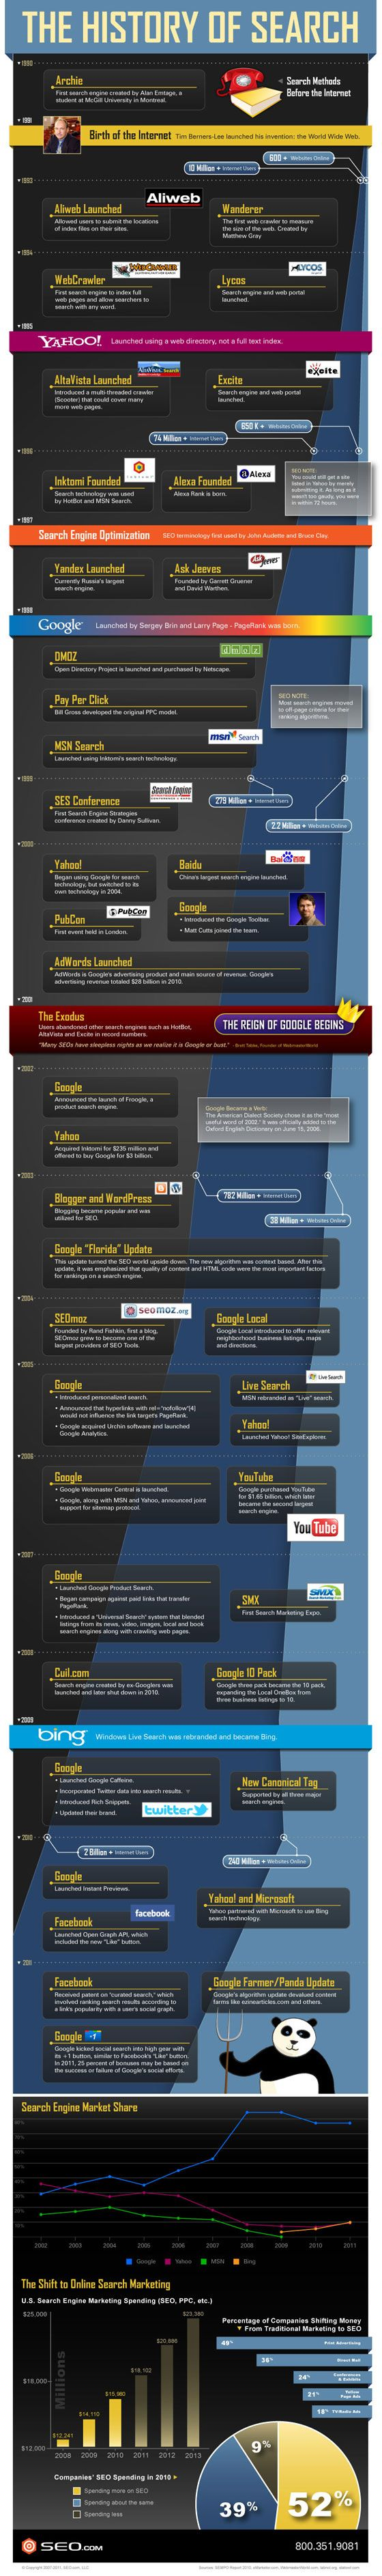 The History of Search and SEO